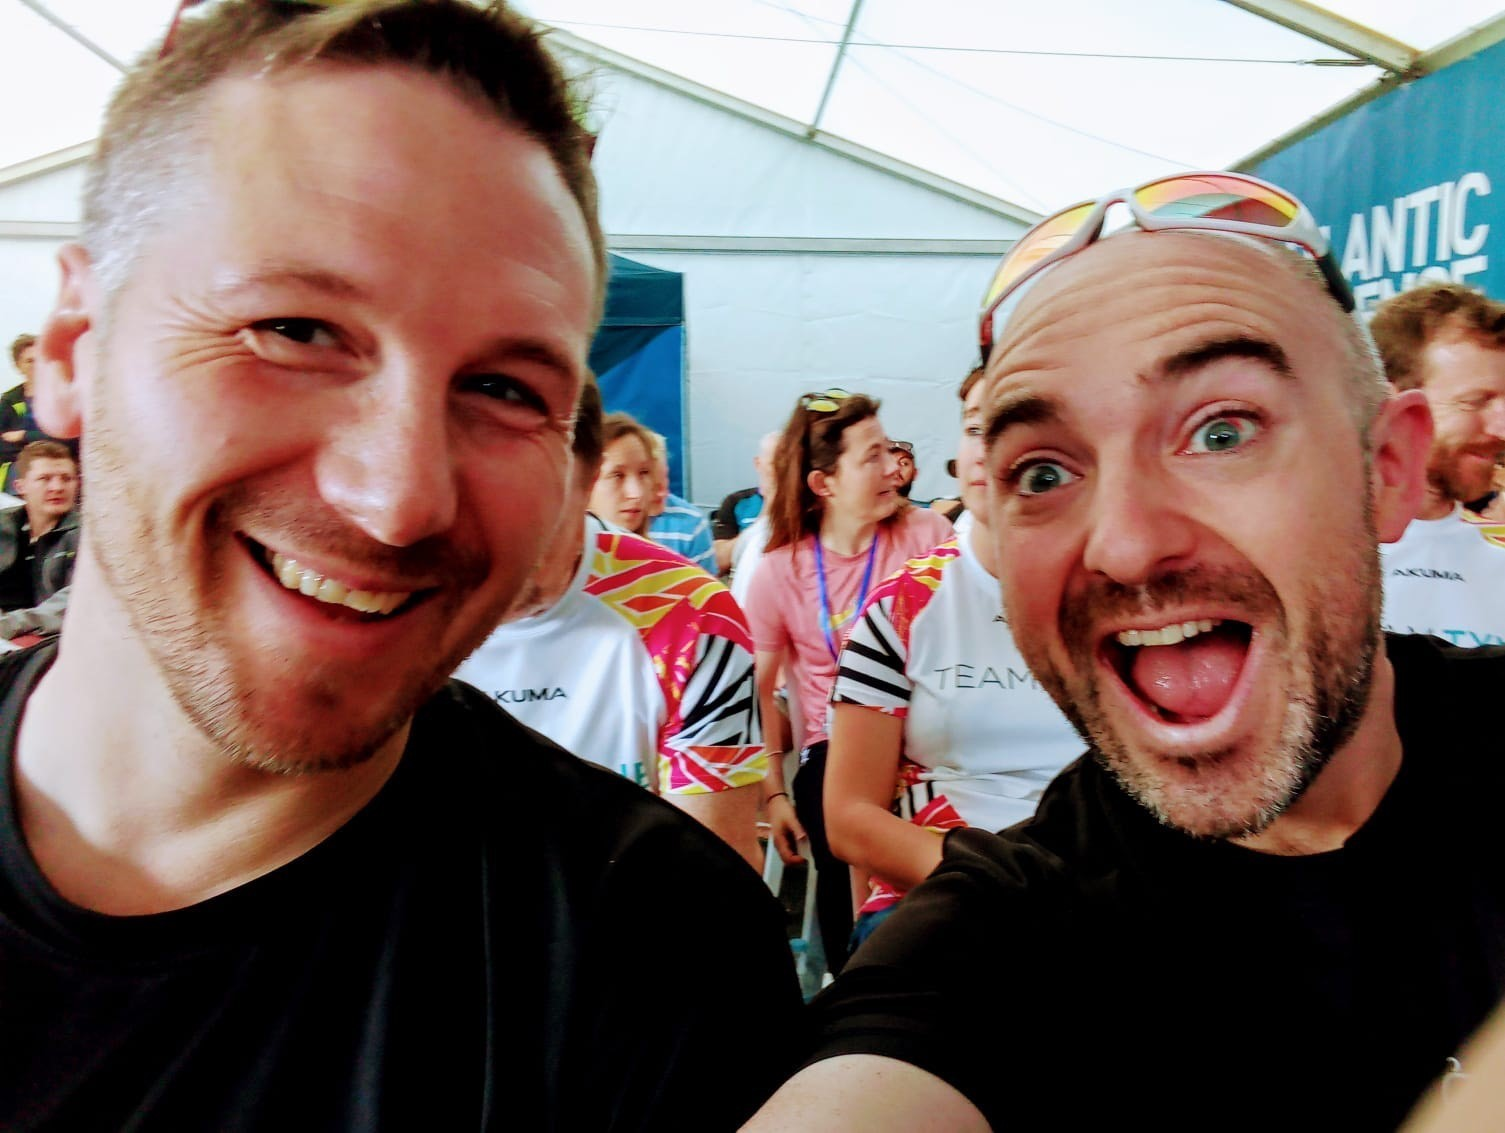 Toby-and-Jez-at-welcome-briefing.jpg?mtime=20181203103354#asset:105646